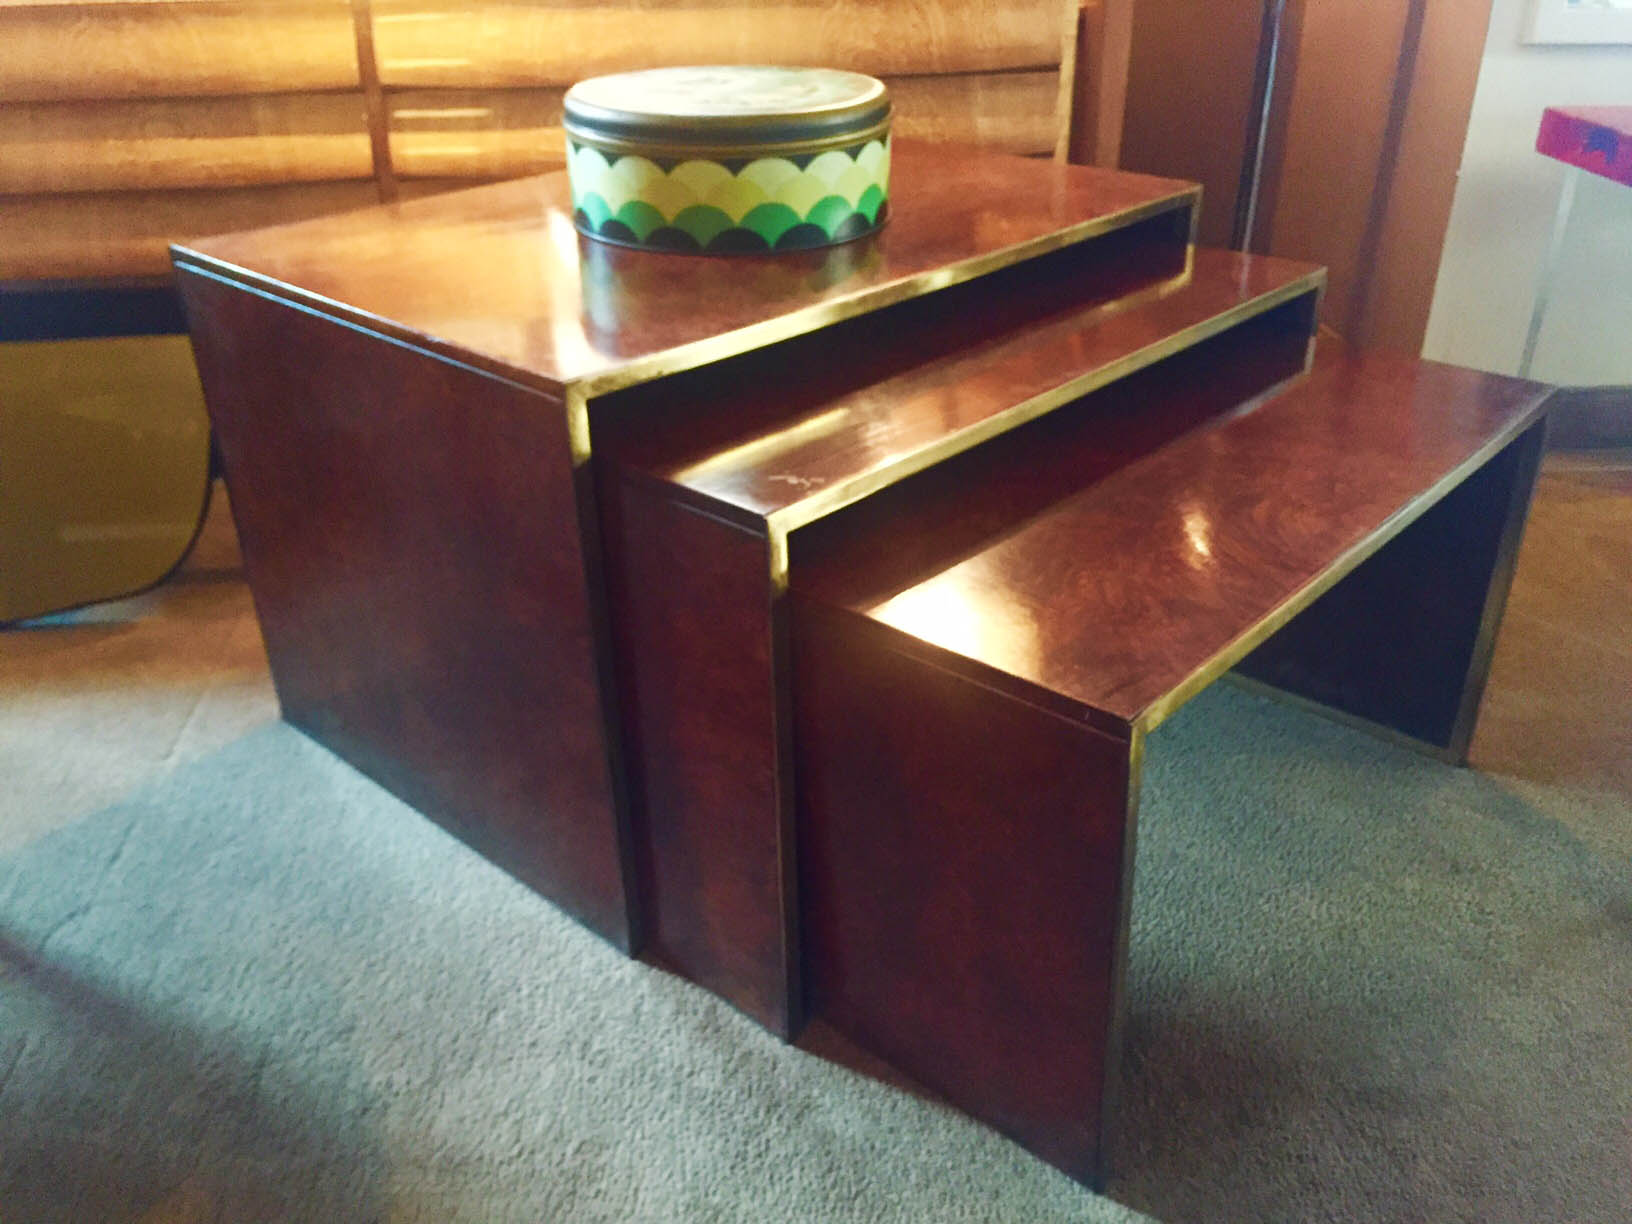 3 Tavolini Willy Rizzo 1970 - 3 coffee Table Willy Rizzo 1970